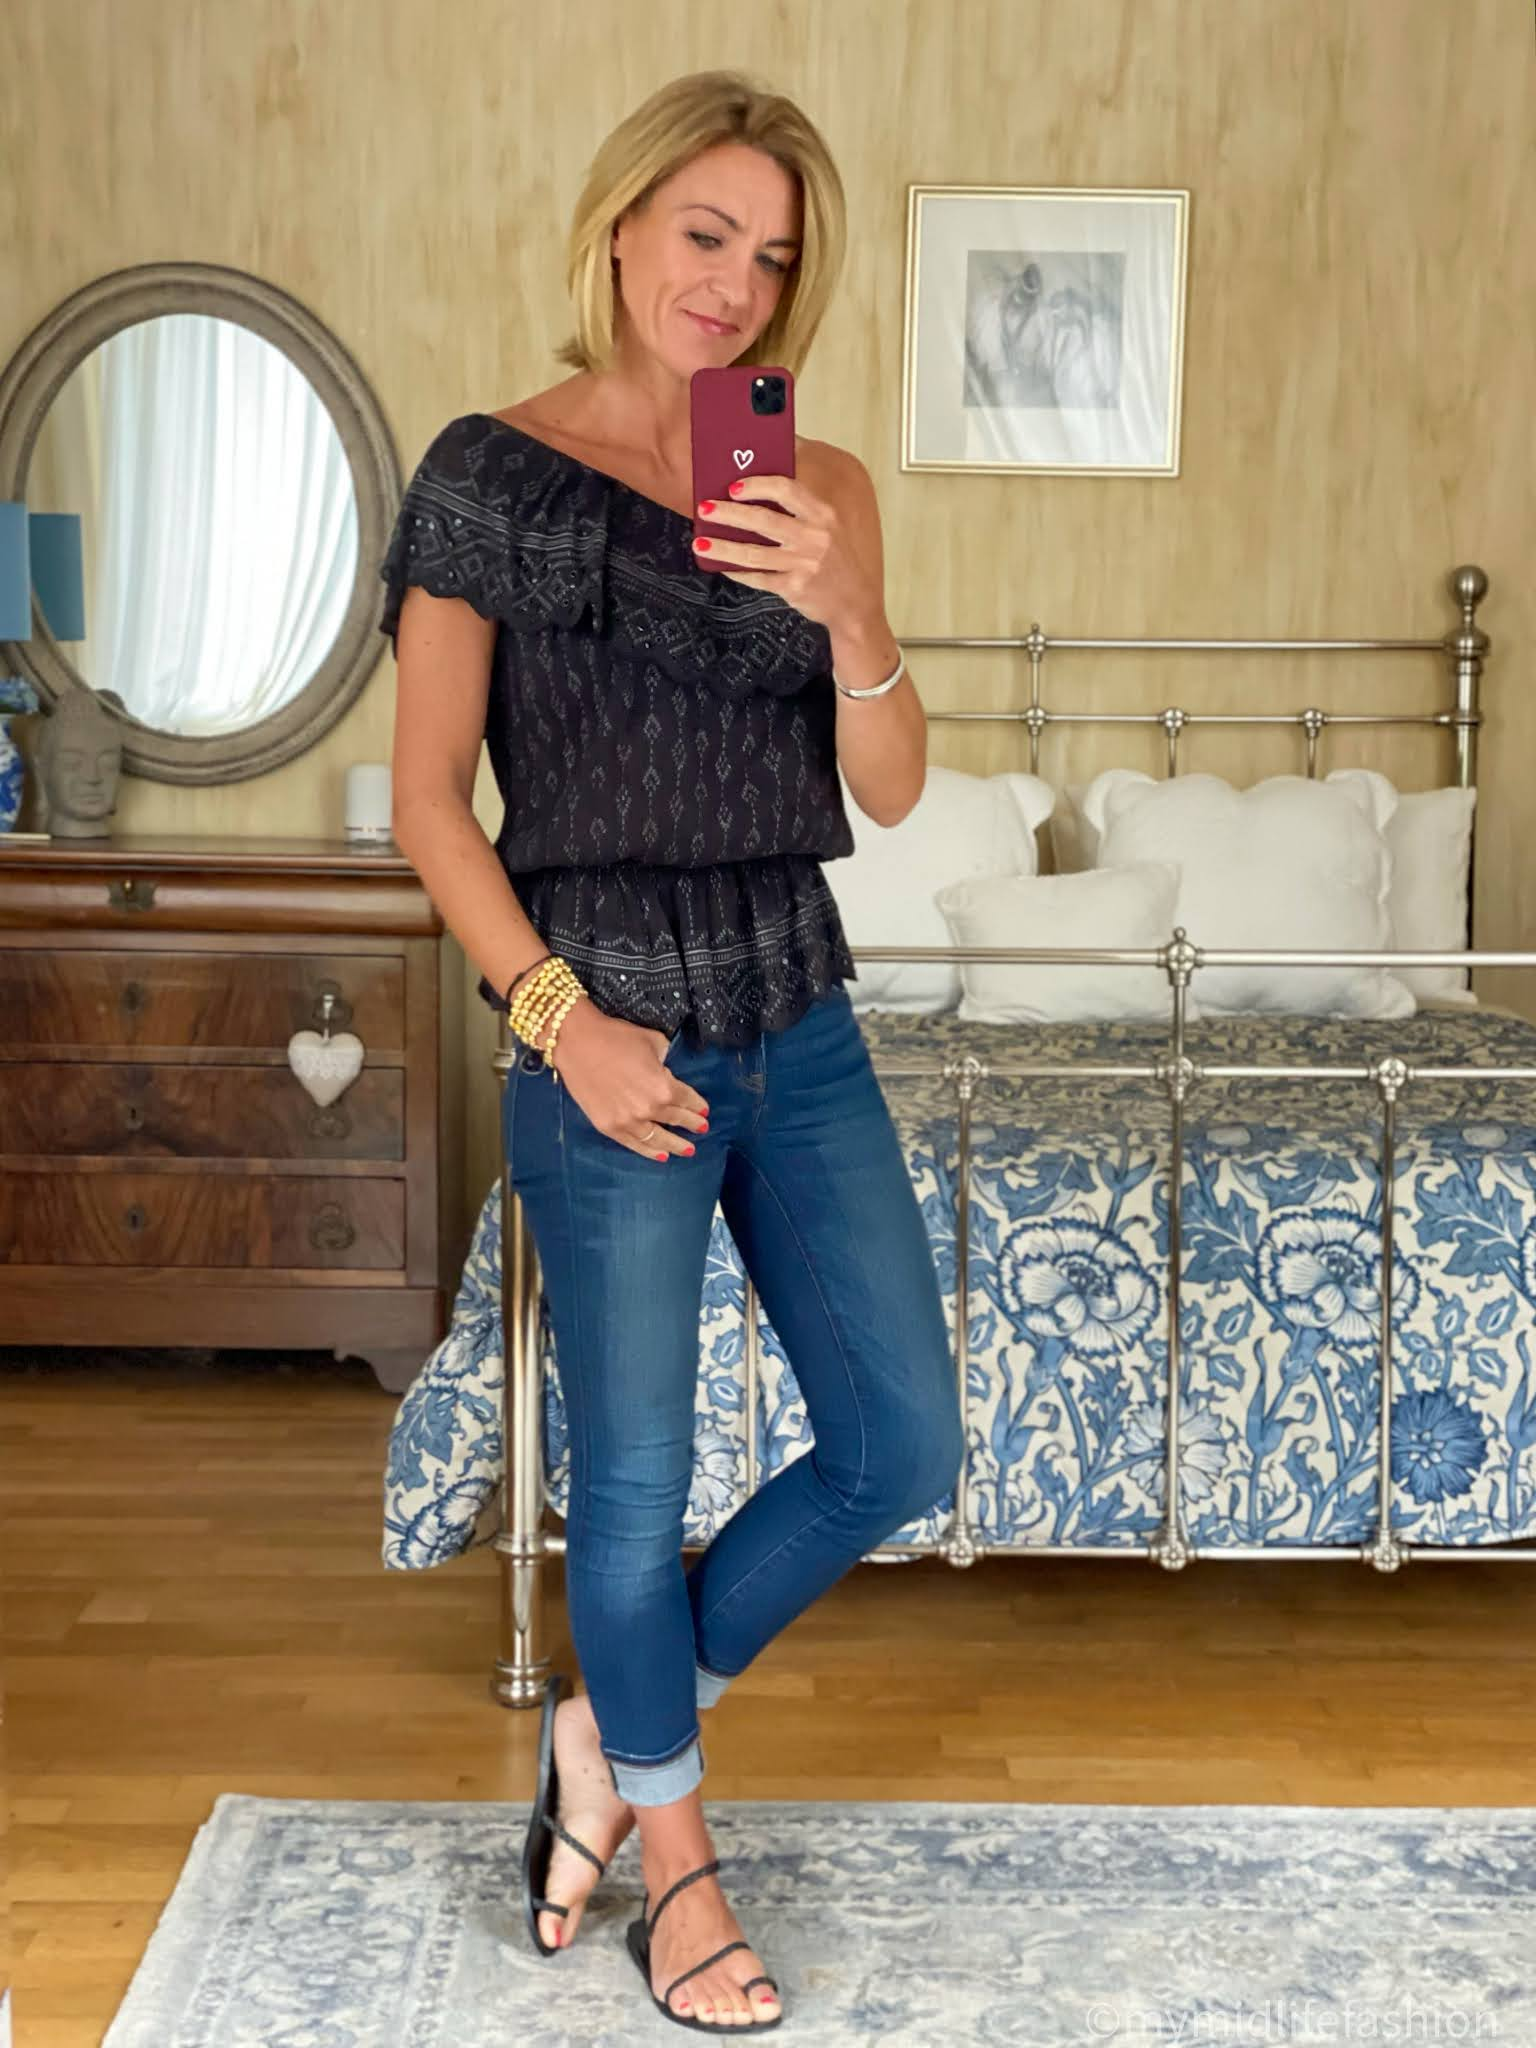 my midlife fashion, Ancient Greek eleftheria braided leather sandals, j crew 8 inch toothpick jeans, Isabel marant etoile off the shoulder top